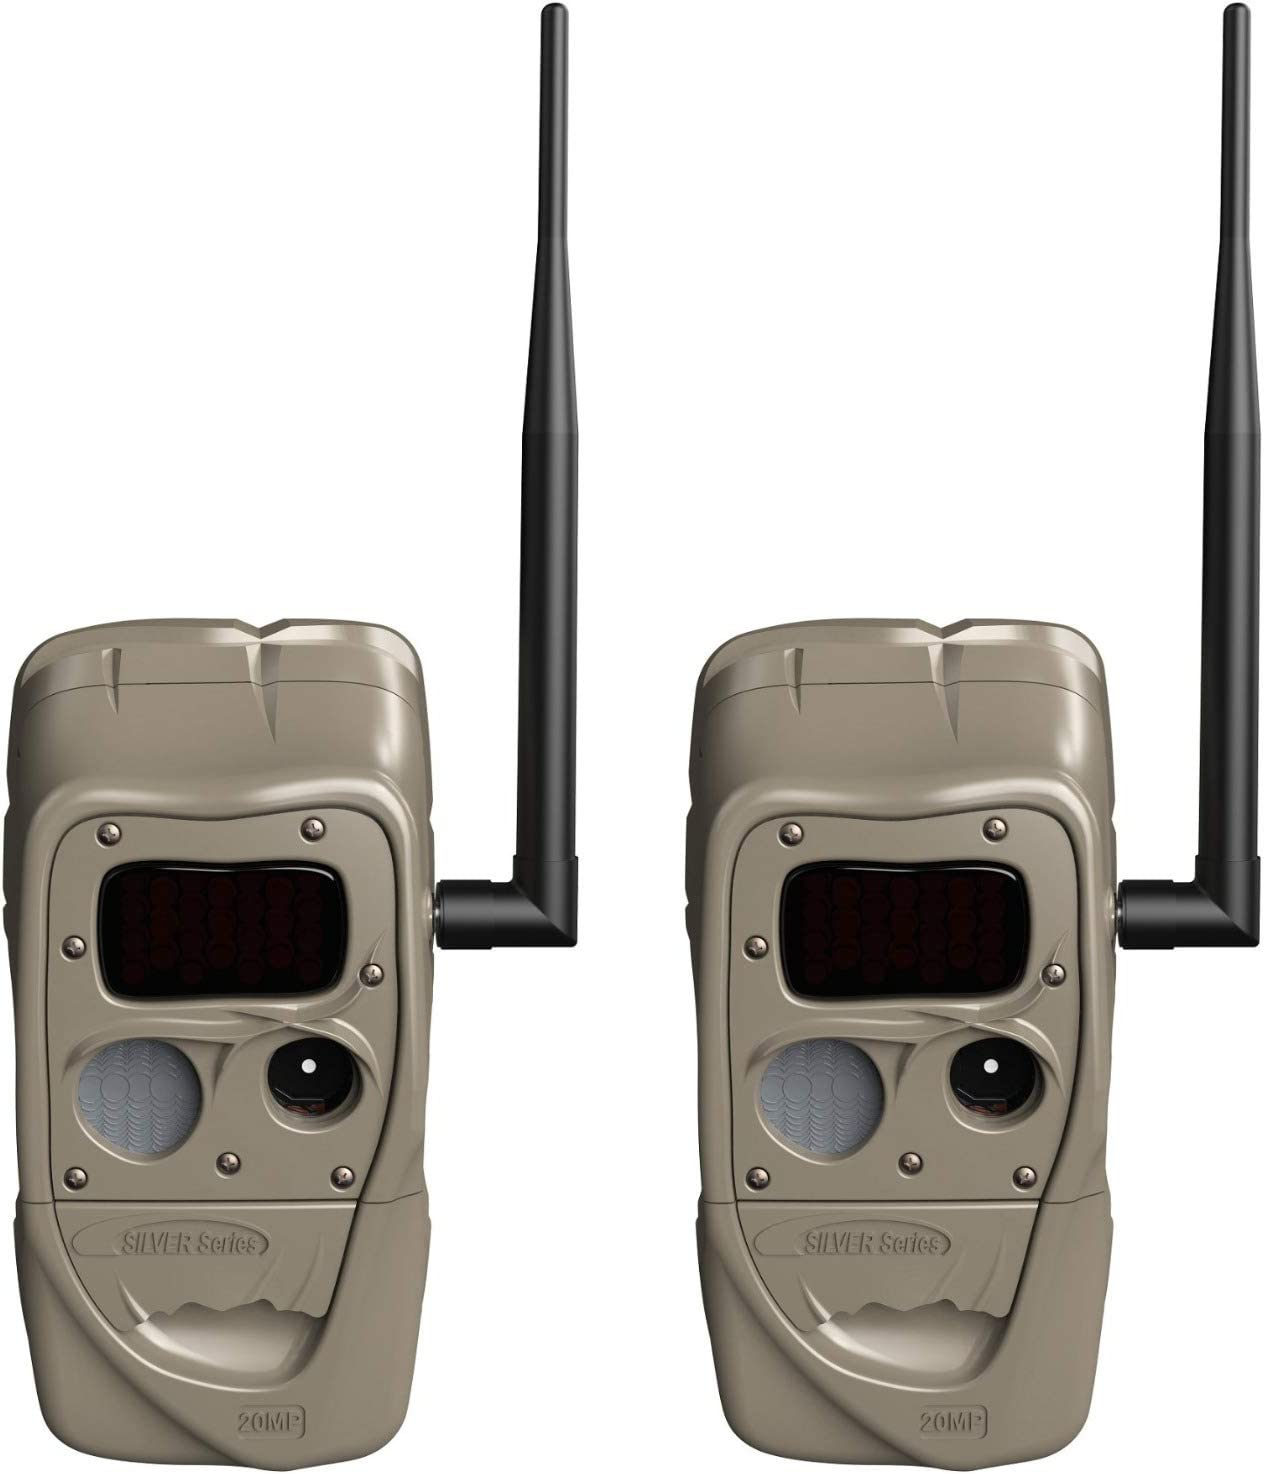 Cuddeback J-1538 CuddeLink Long Range Black Flash Trail Camera (2-Pack) Bundle (2 Items)